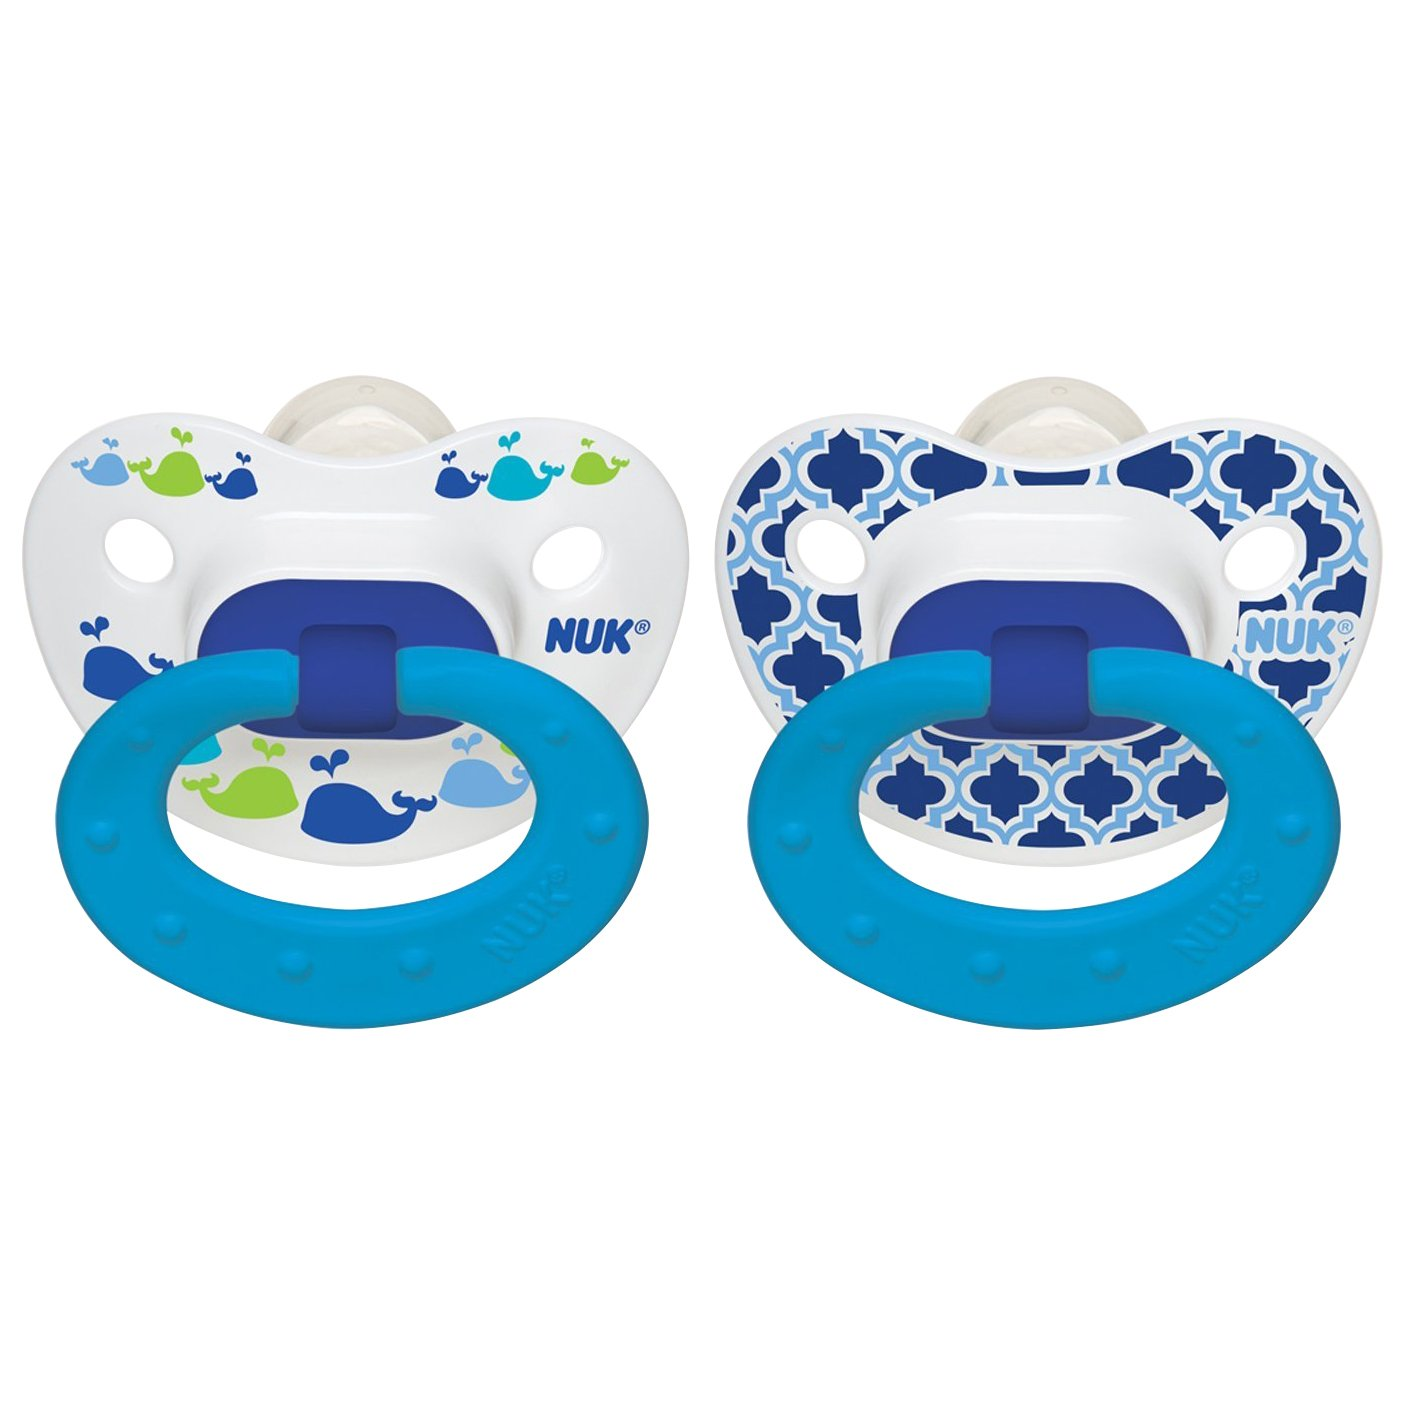 Amazon.com : NUK Sports Puller Pacifier, 18-36 Months, 2 Pack ...